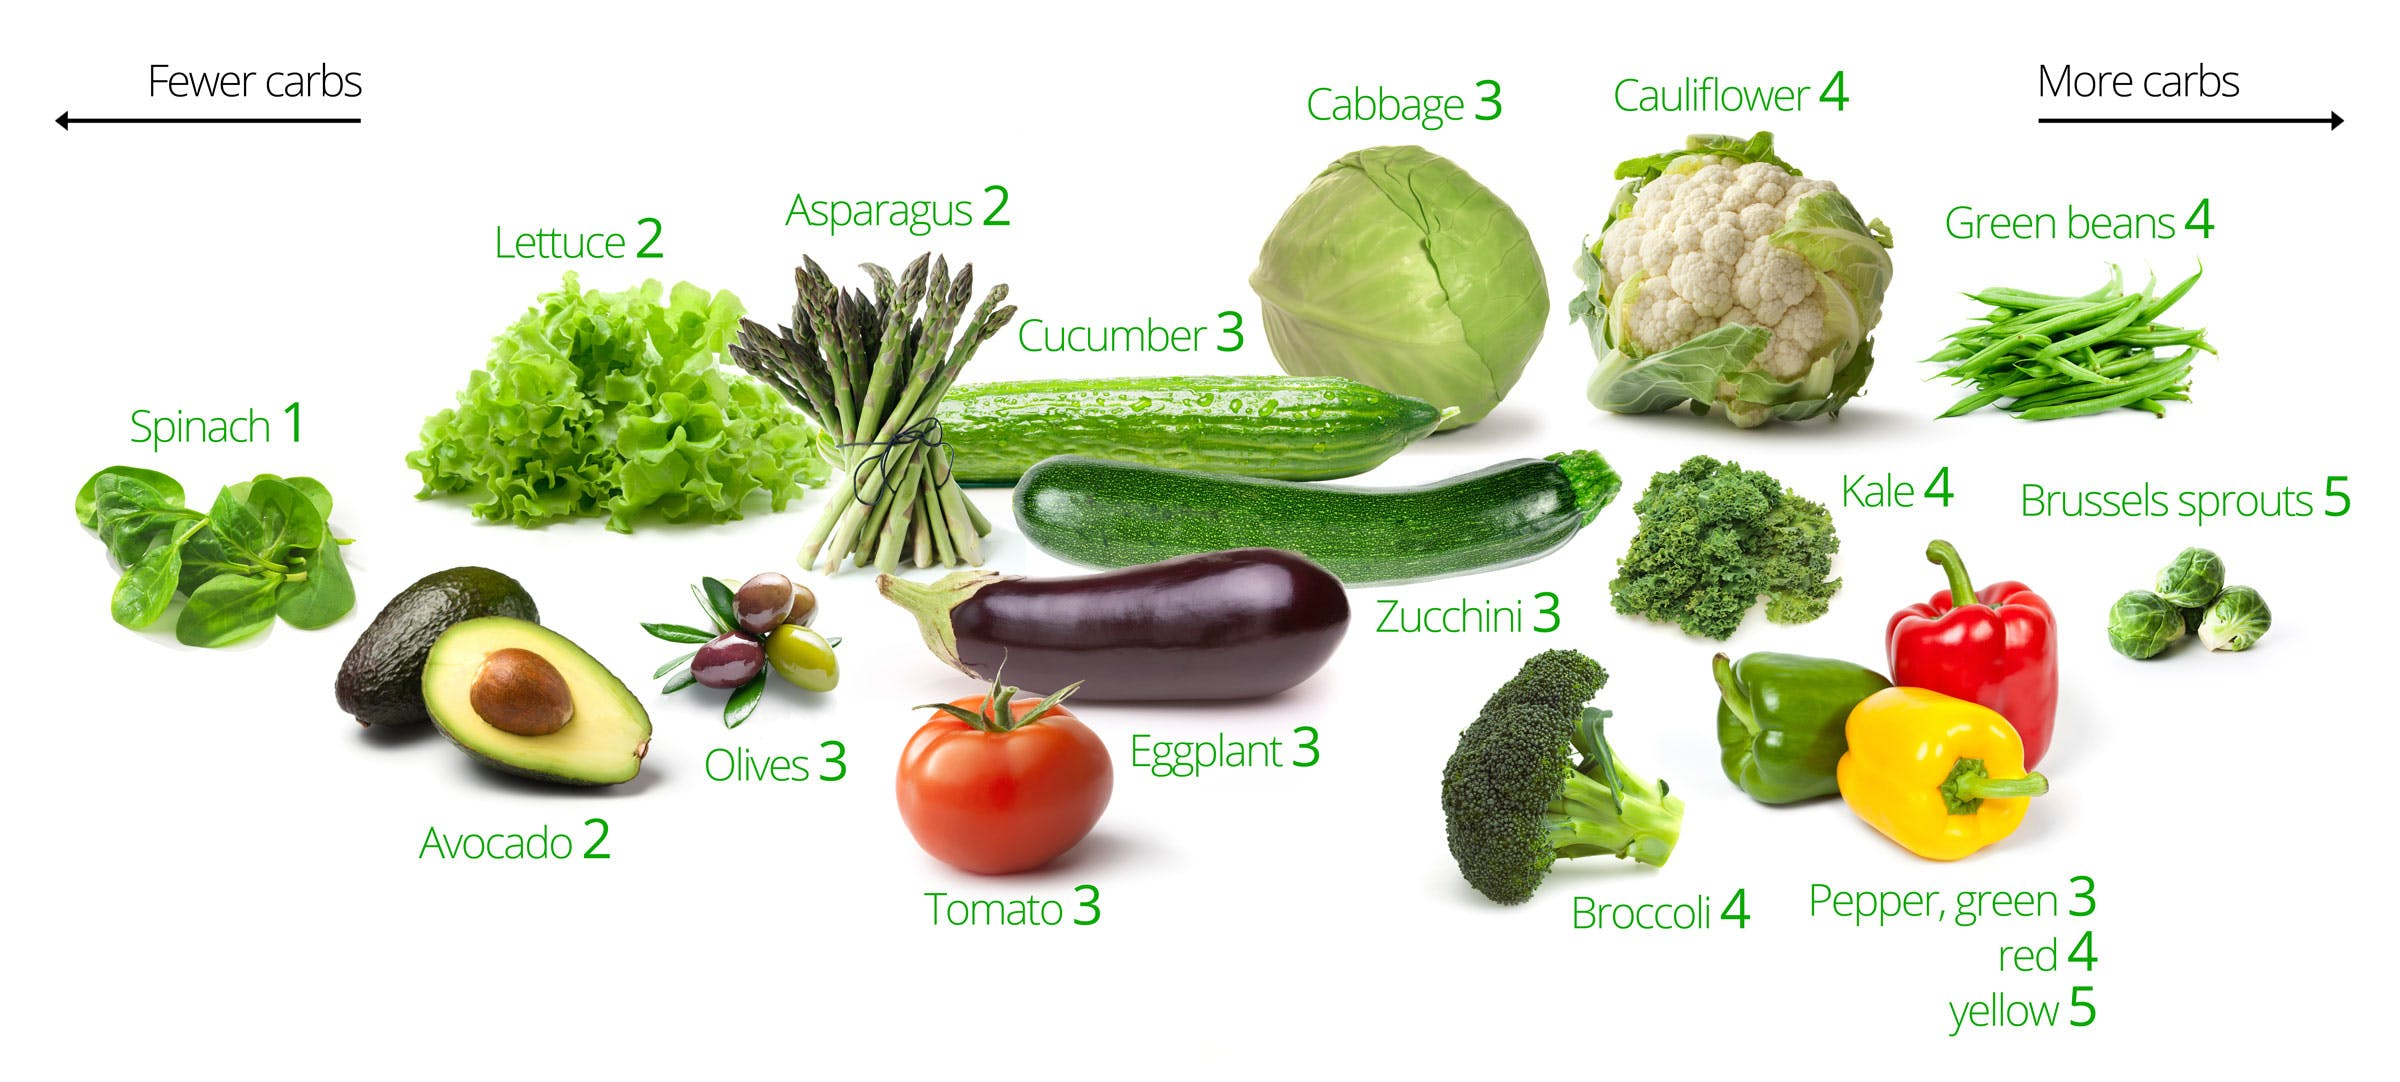 low-carb vegetables - visual guide to the best and worst